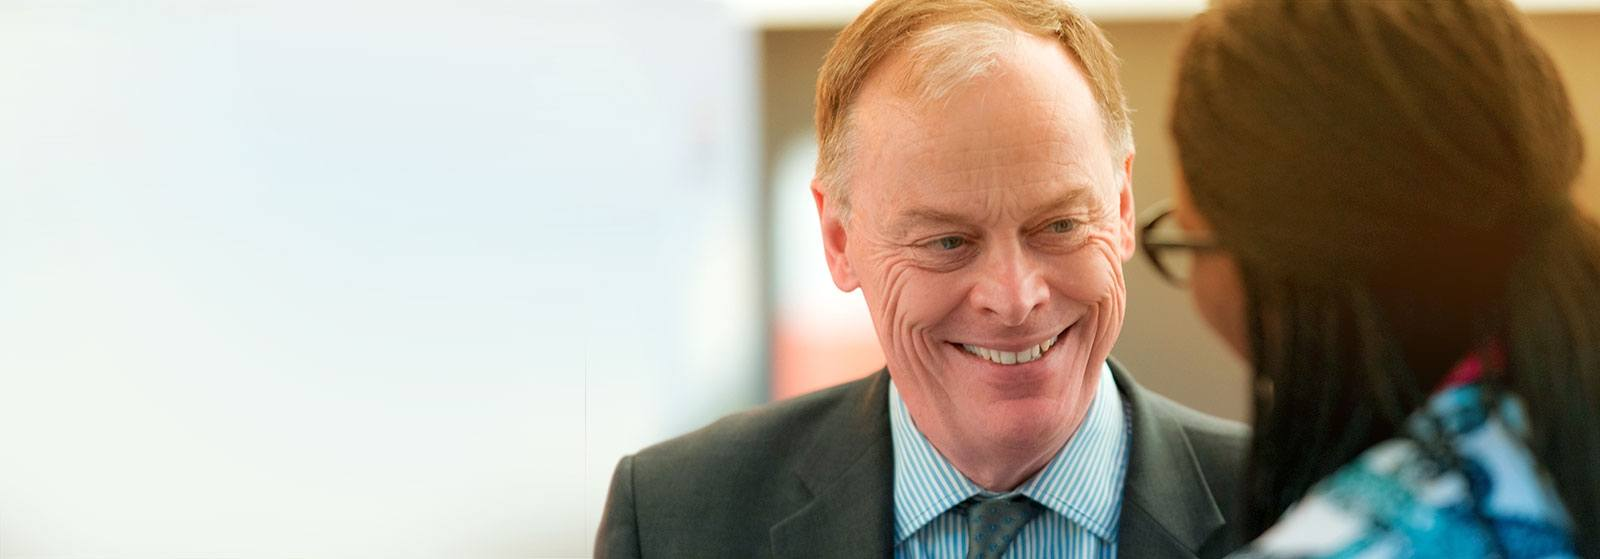 EDF Energy's CEO, Vincent de Rivaz in conversation with a lady